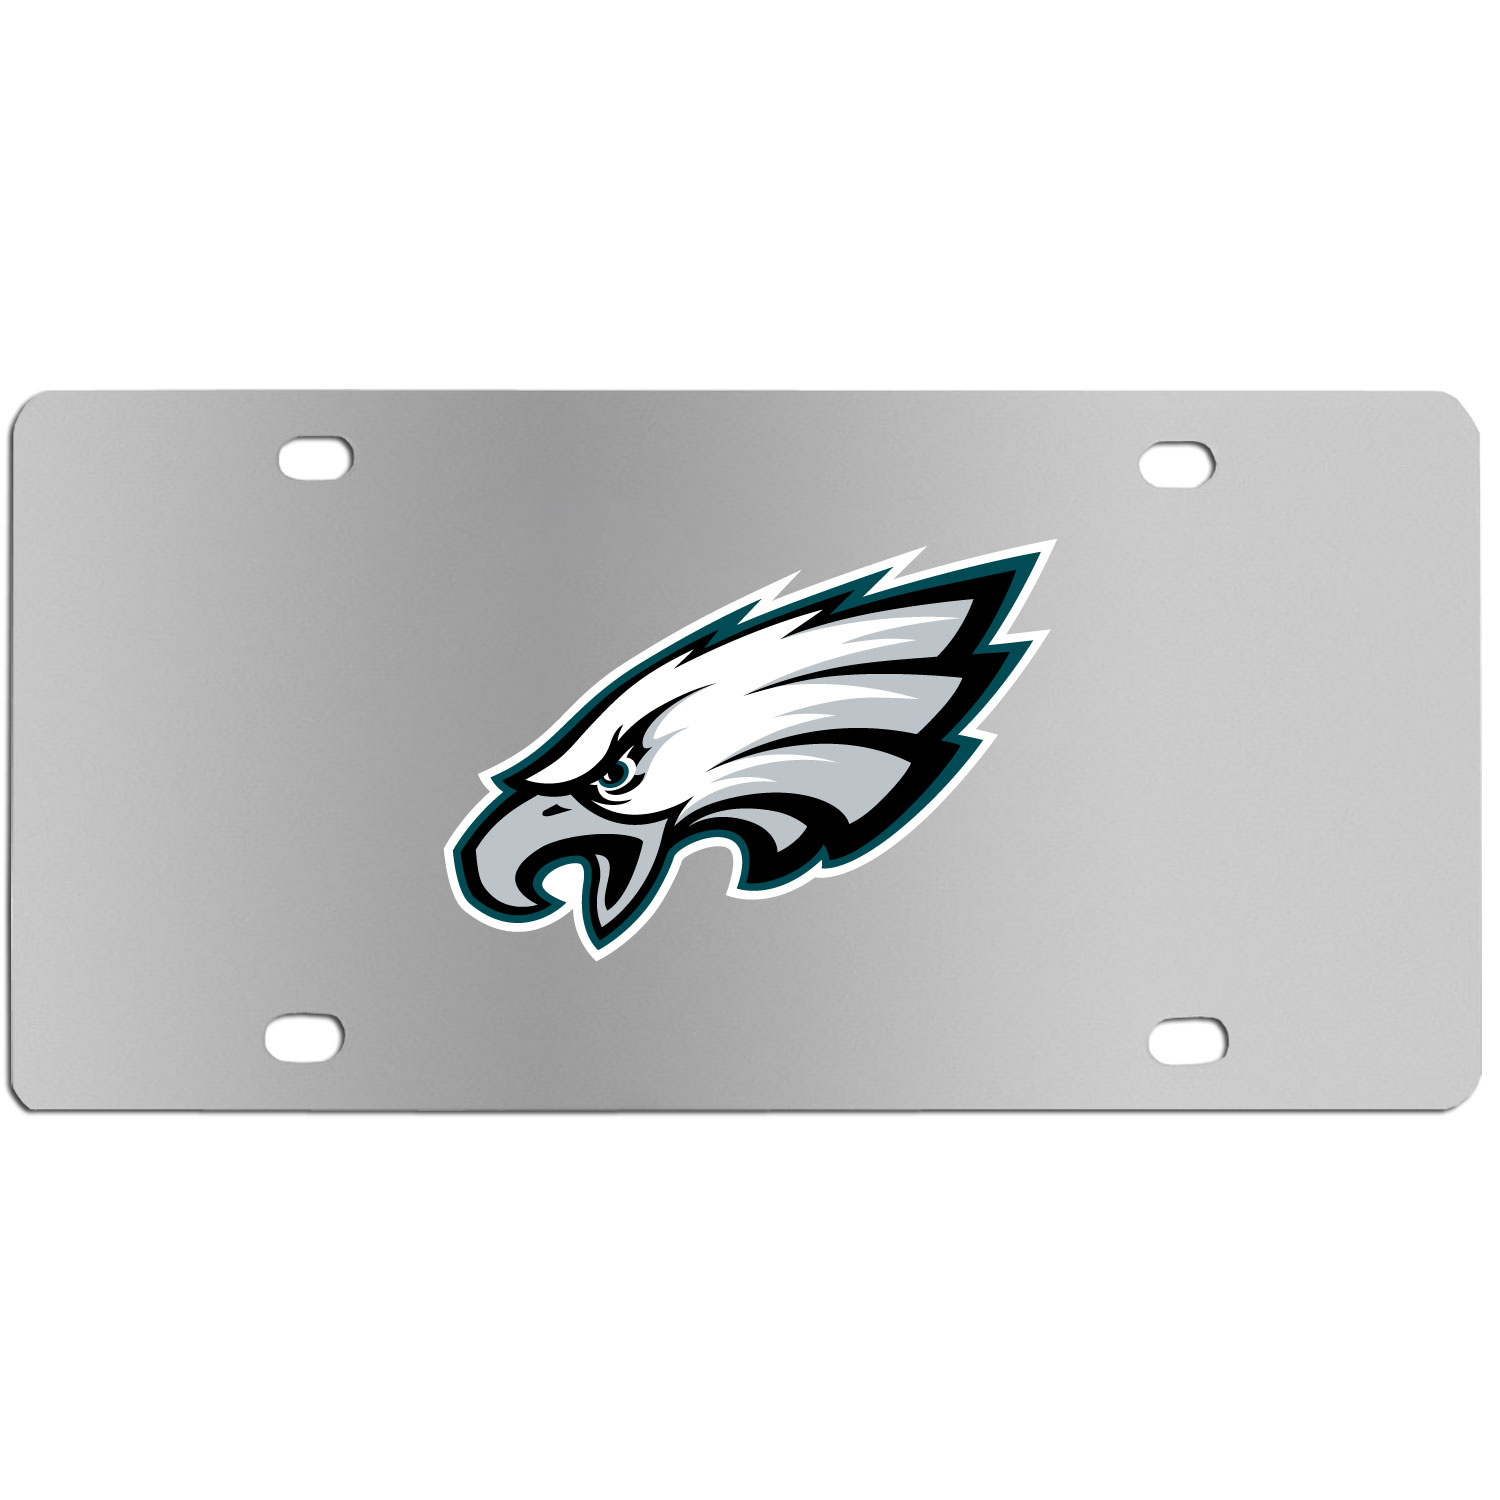 Philadelphia Eagles Steel License Plate Wall Plaque - This high-quality stainless steel license plate features a detailed team logo on a the polished surface. The attractive plate is perfect for wall mounting in your home or office to become the perfect die-hard Philadelphia Eagles fan decor.